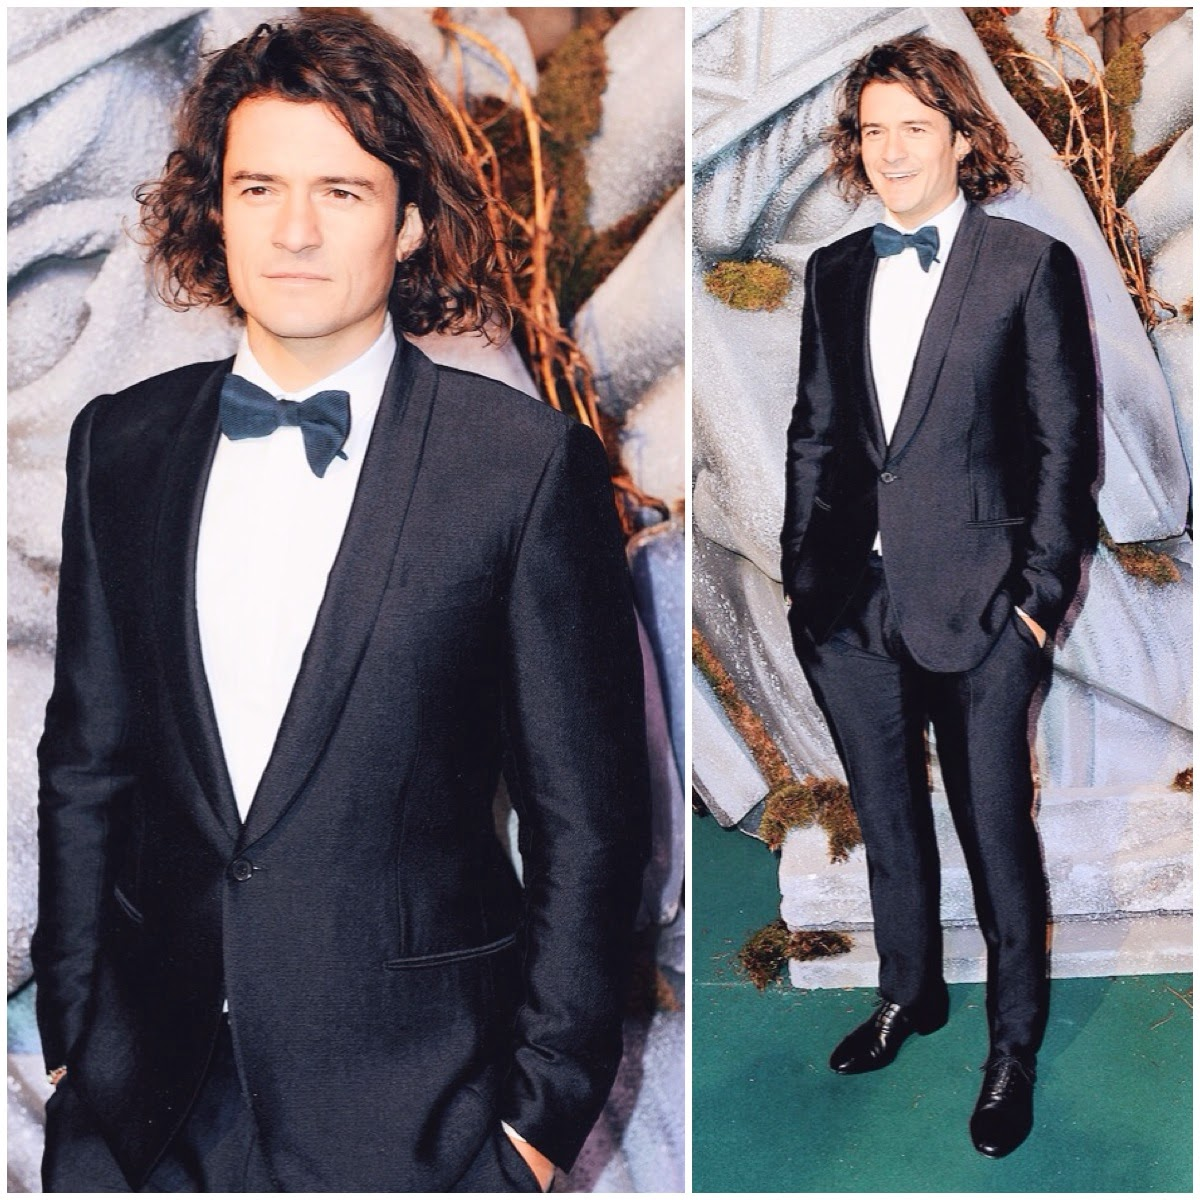 Orlando Bloom wears Lanvin Pre Spring 2015 to world premiere of The Hobbit The Battle Of The Five Armies - London 1st December 2014